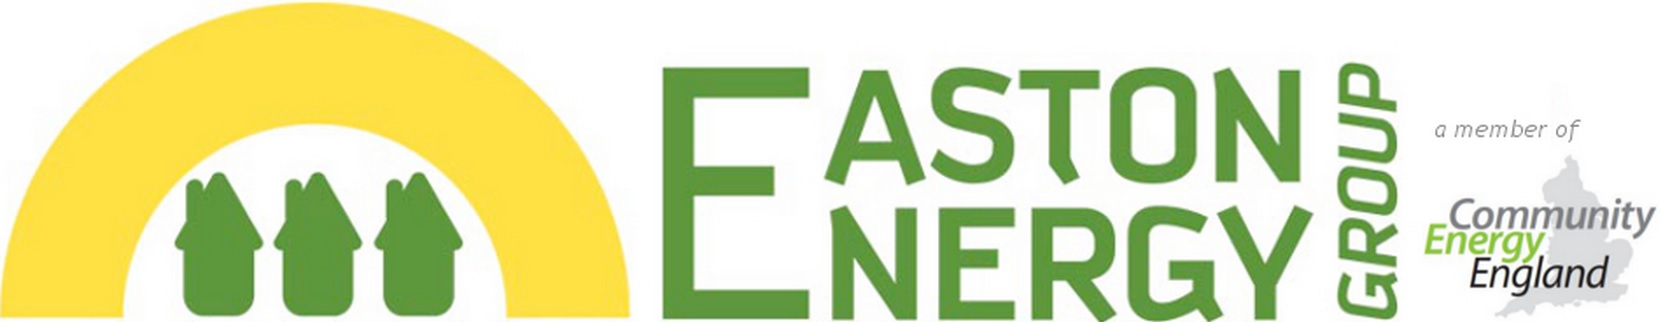 Easton - logo 1